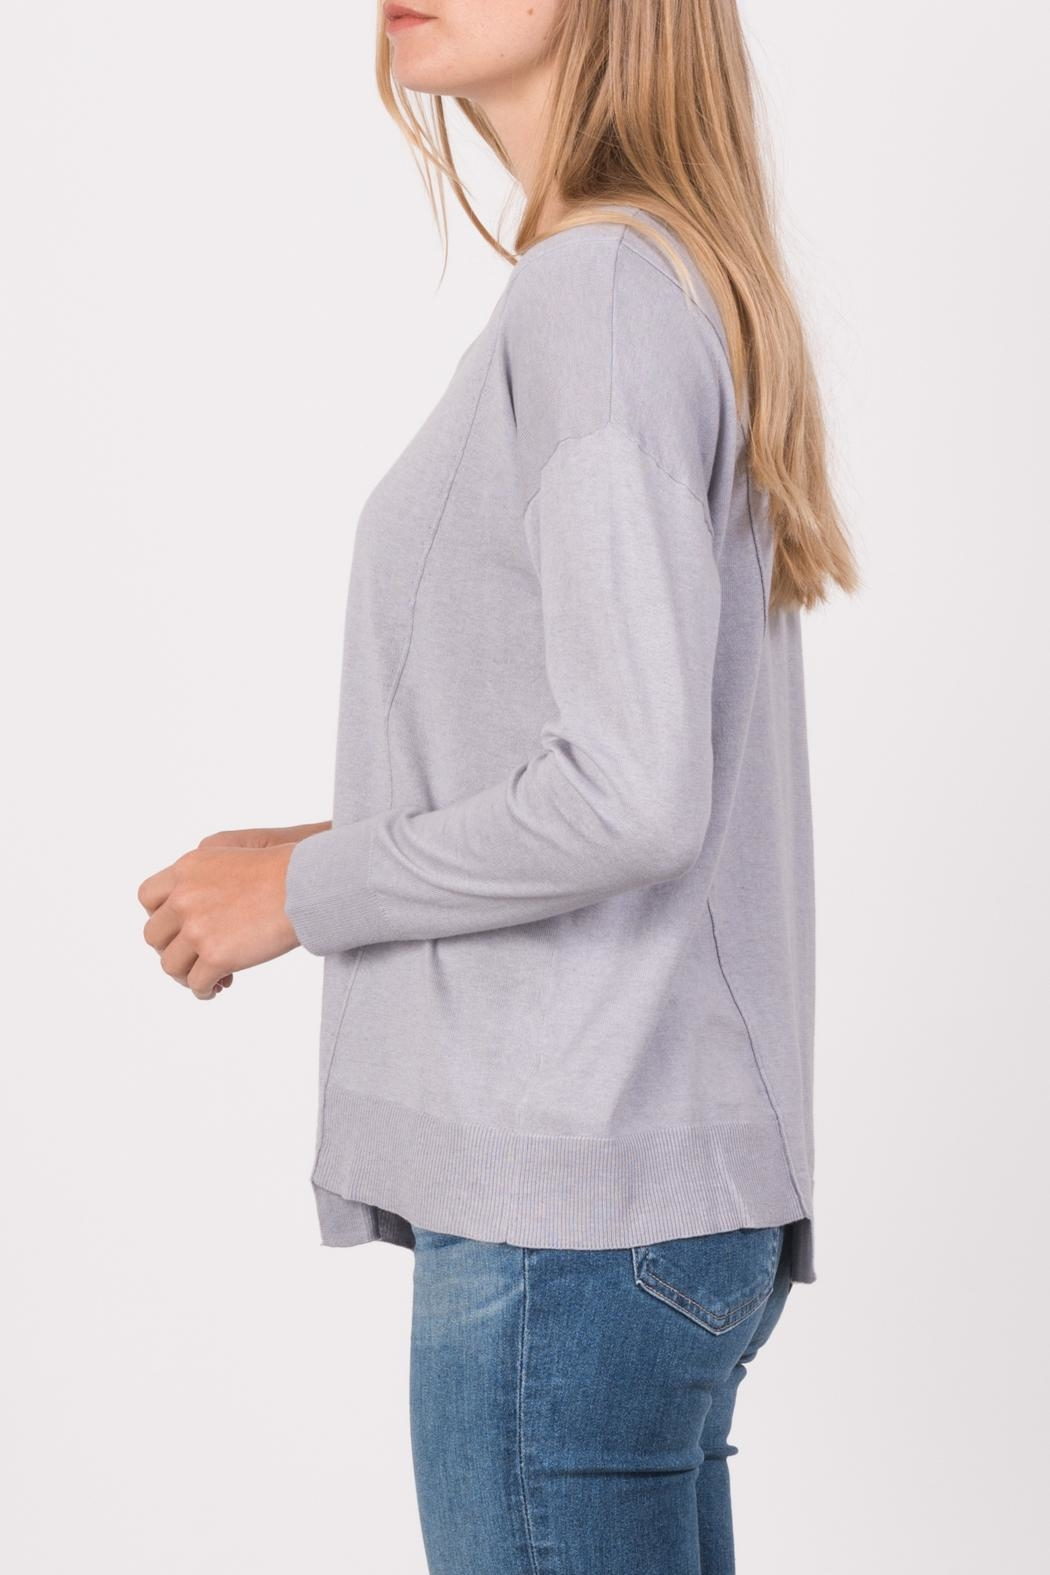 Margaret O'Leary Exie Scoop Pullover - Front Full Image